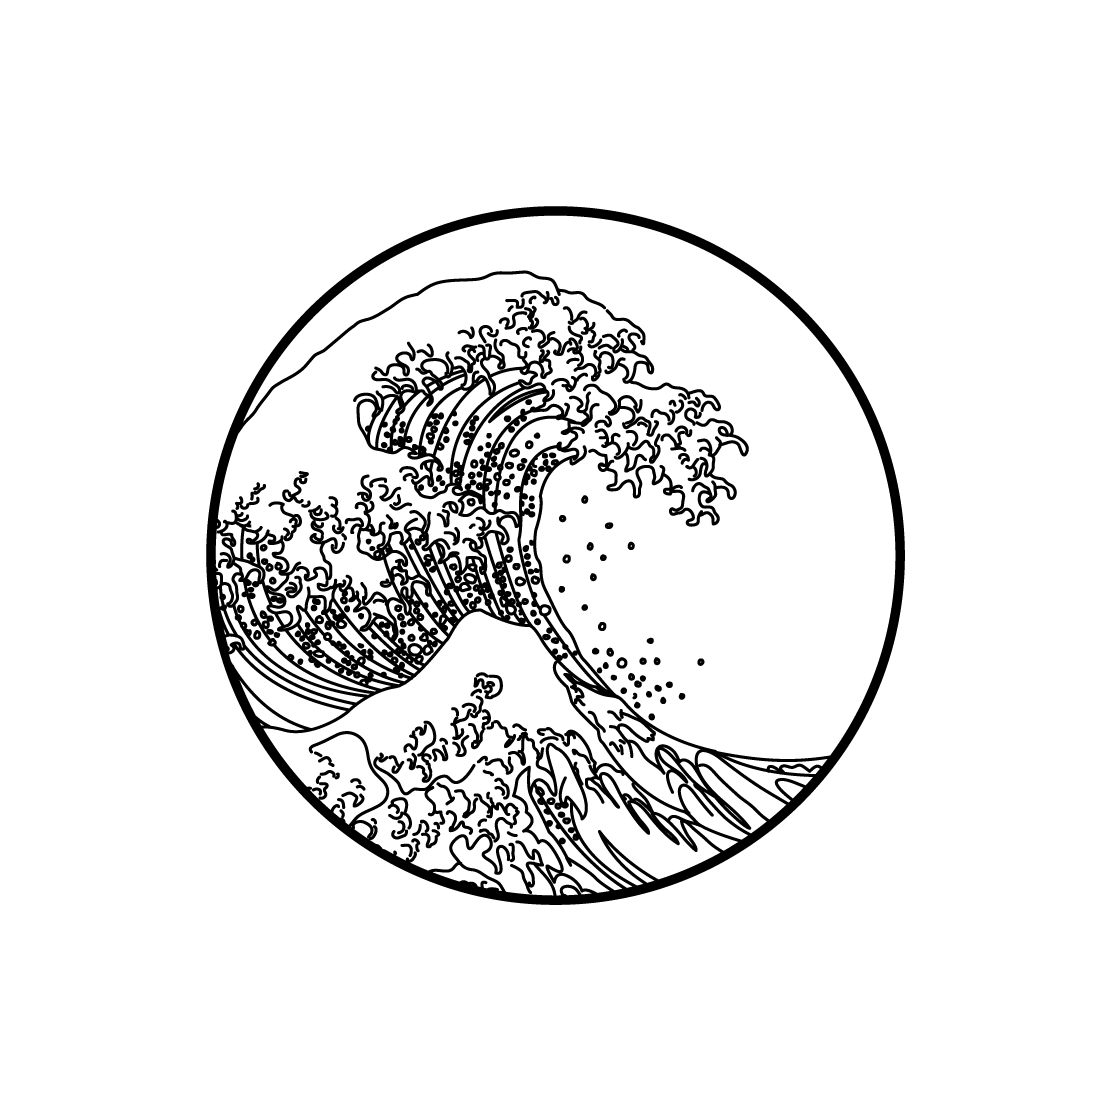 The great wave habitatt supply co for The great wave coloring page